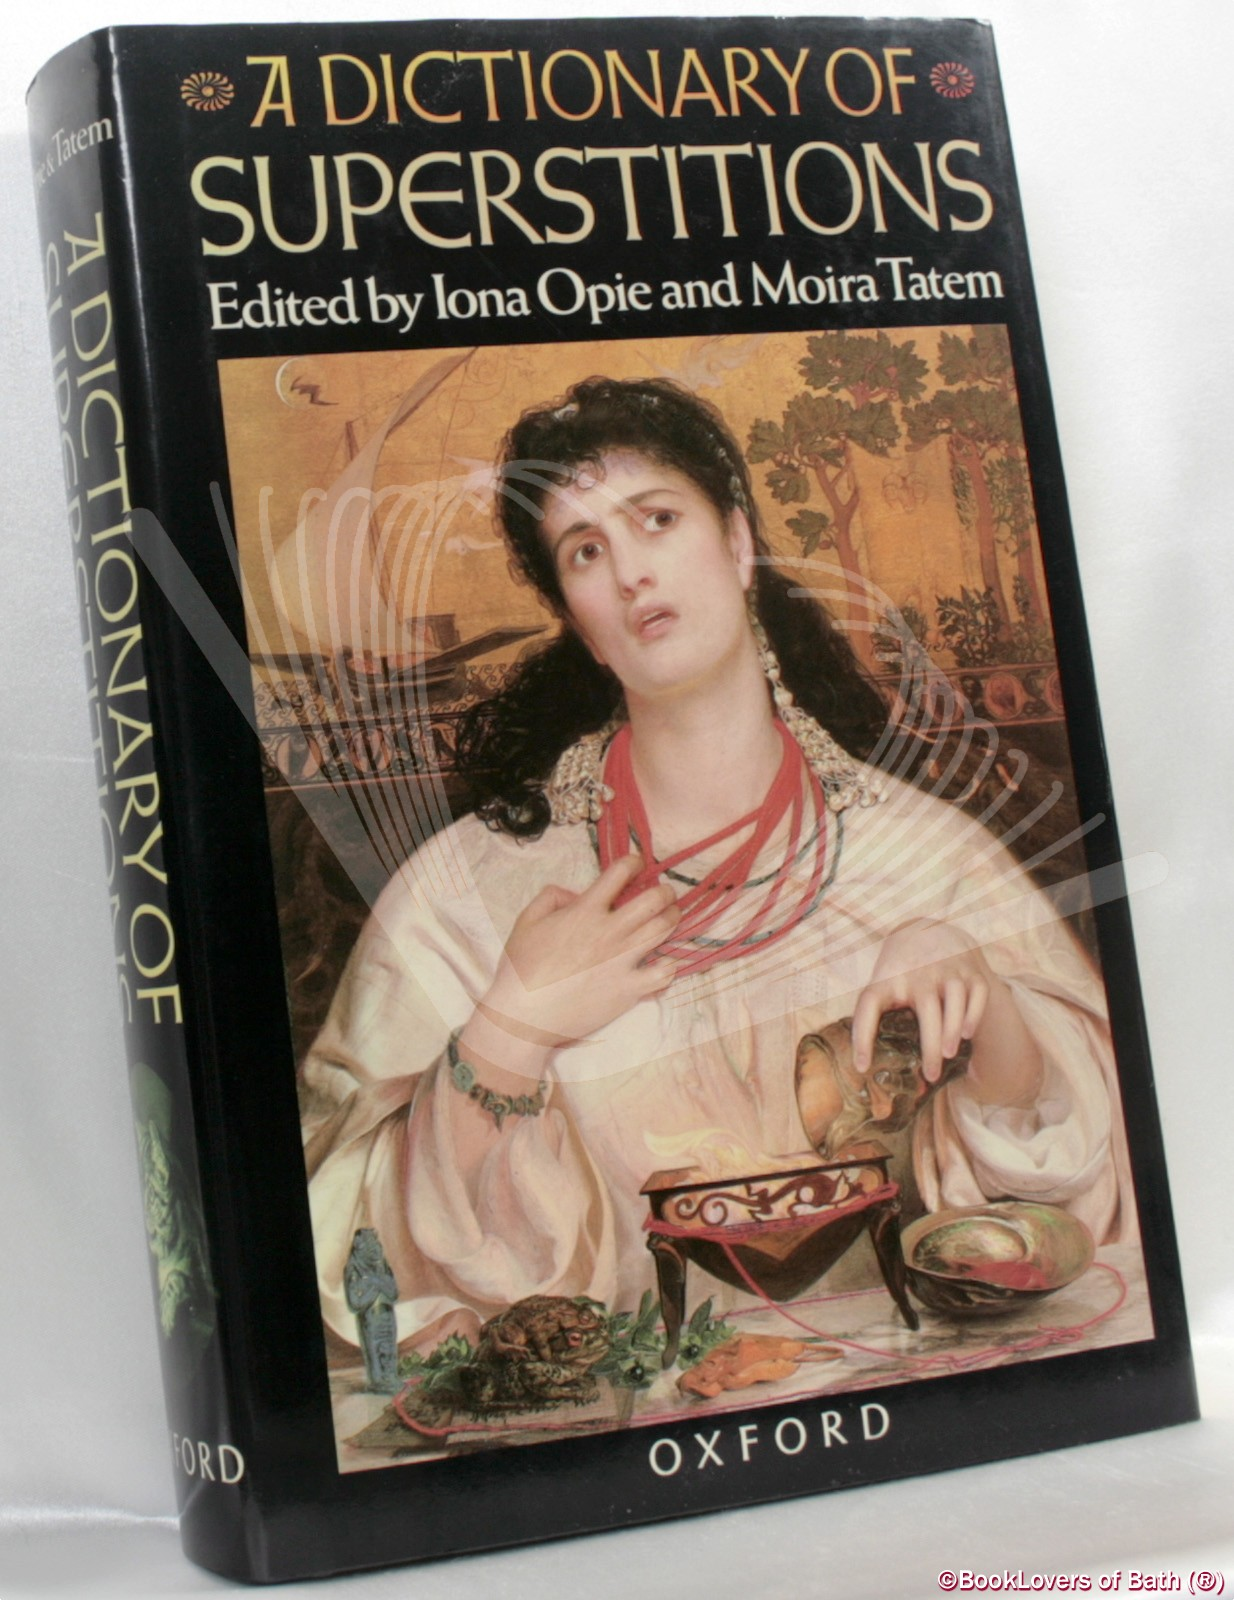 A Dictionary of Superstitions - Edited by Iona Opie & Moira Tatem